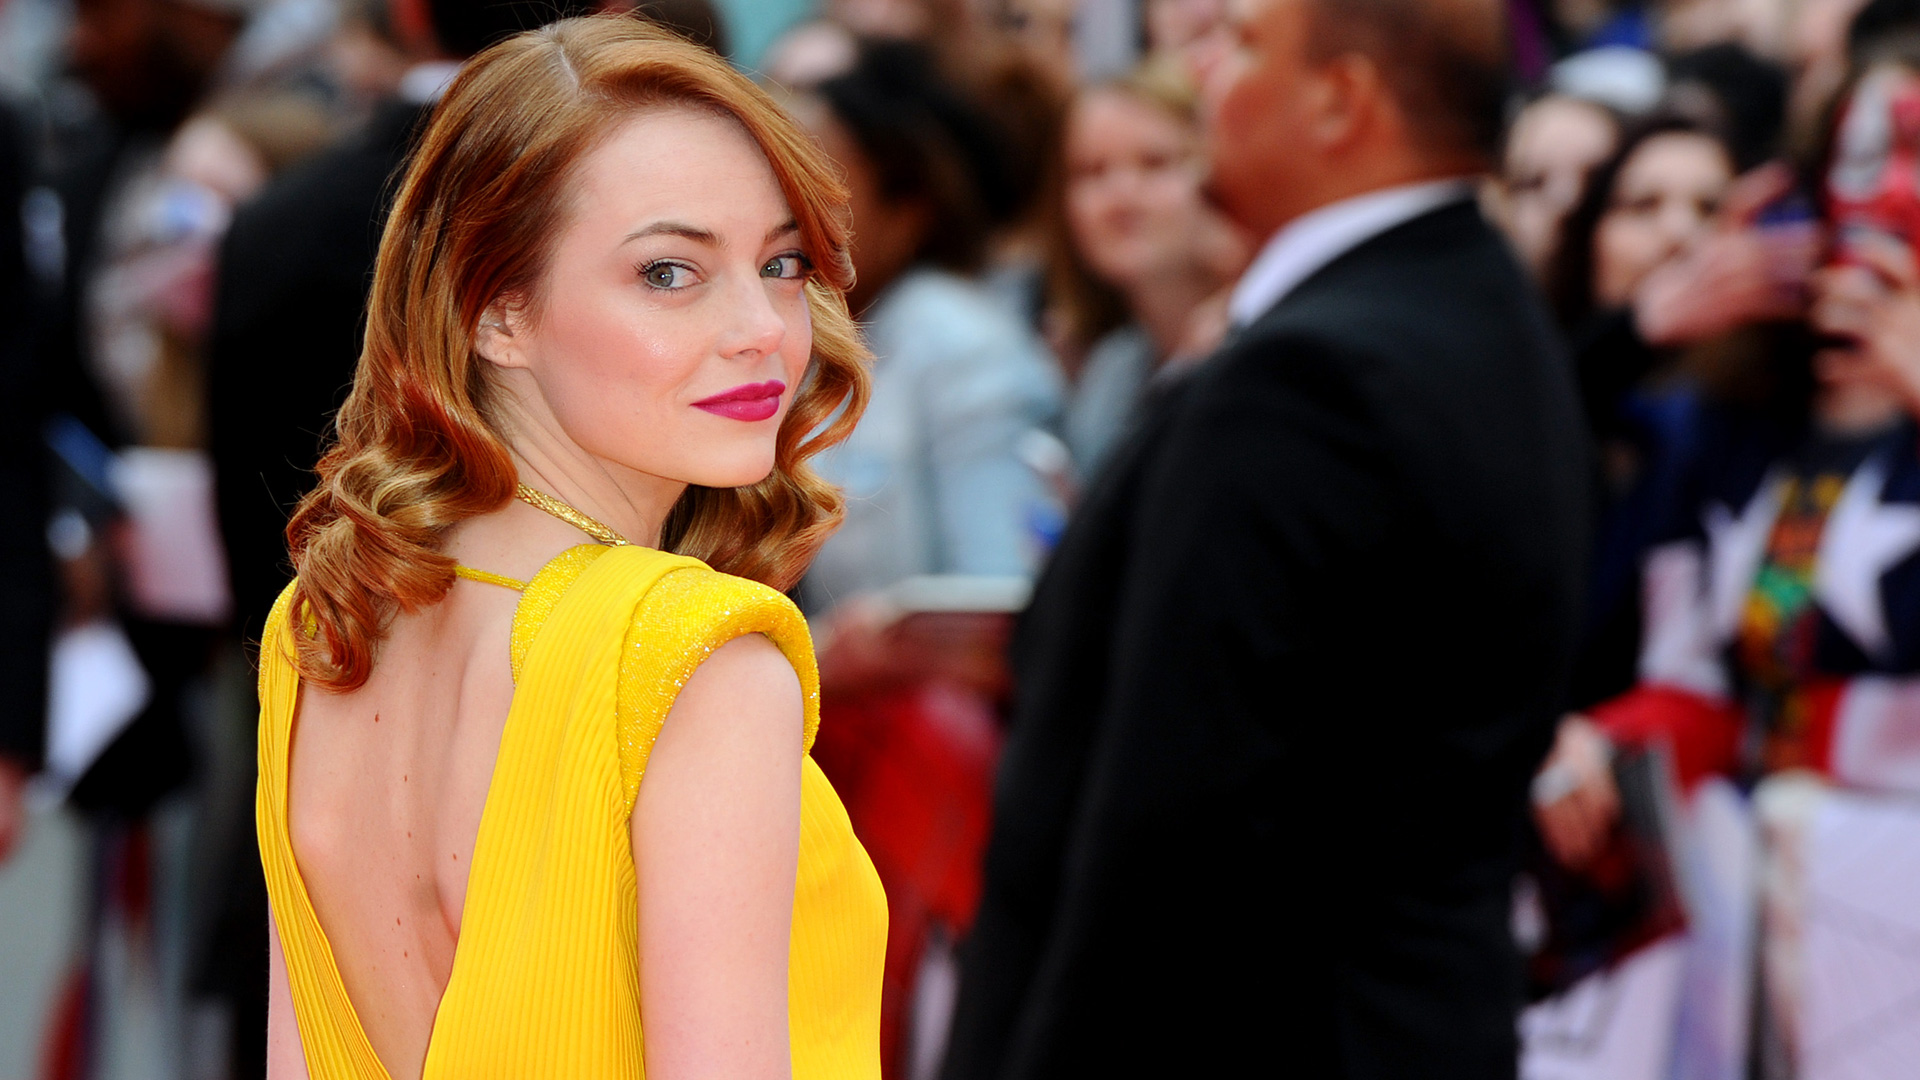 Emma Stone wearing yellow